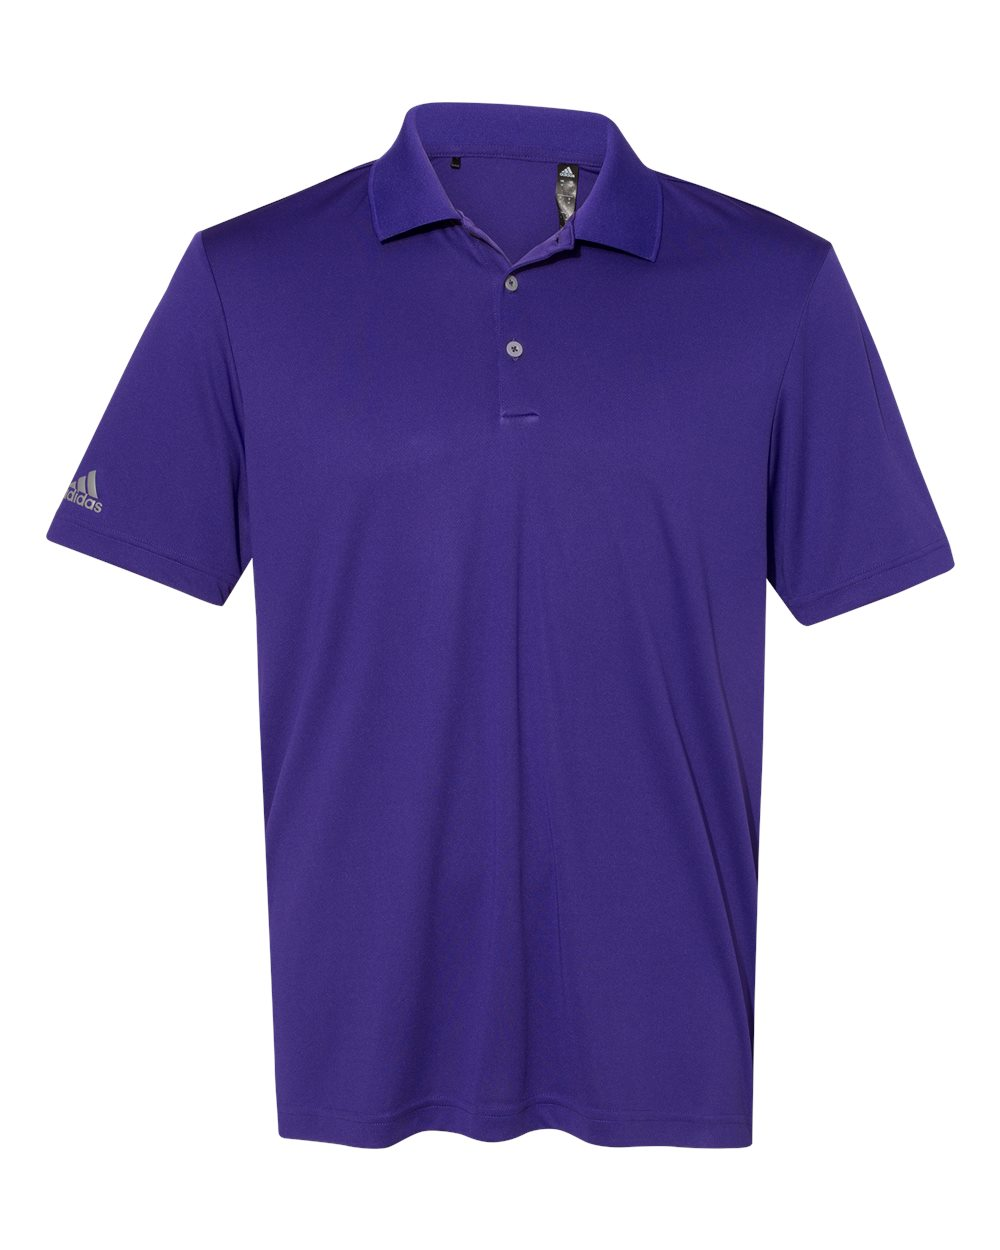 Adidas-Performance-Sport-Shirt-Polo-Button-A230-up-to-4XL miniature 14